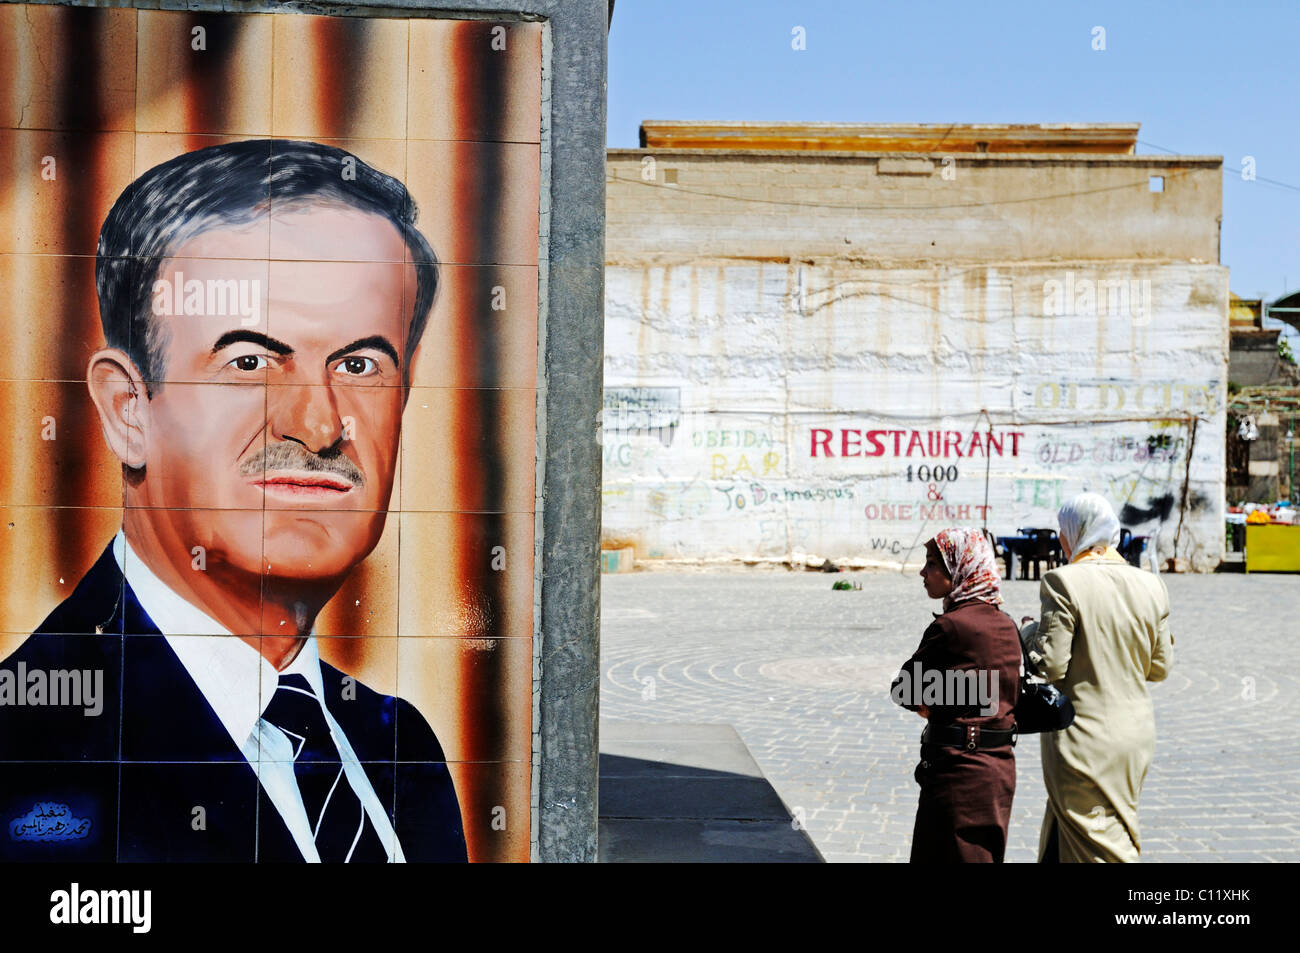 Tiles with a portrait of former President Hafez al Assad, and women with headscarves, Bosra, Syria, Asia - Stock Image